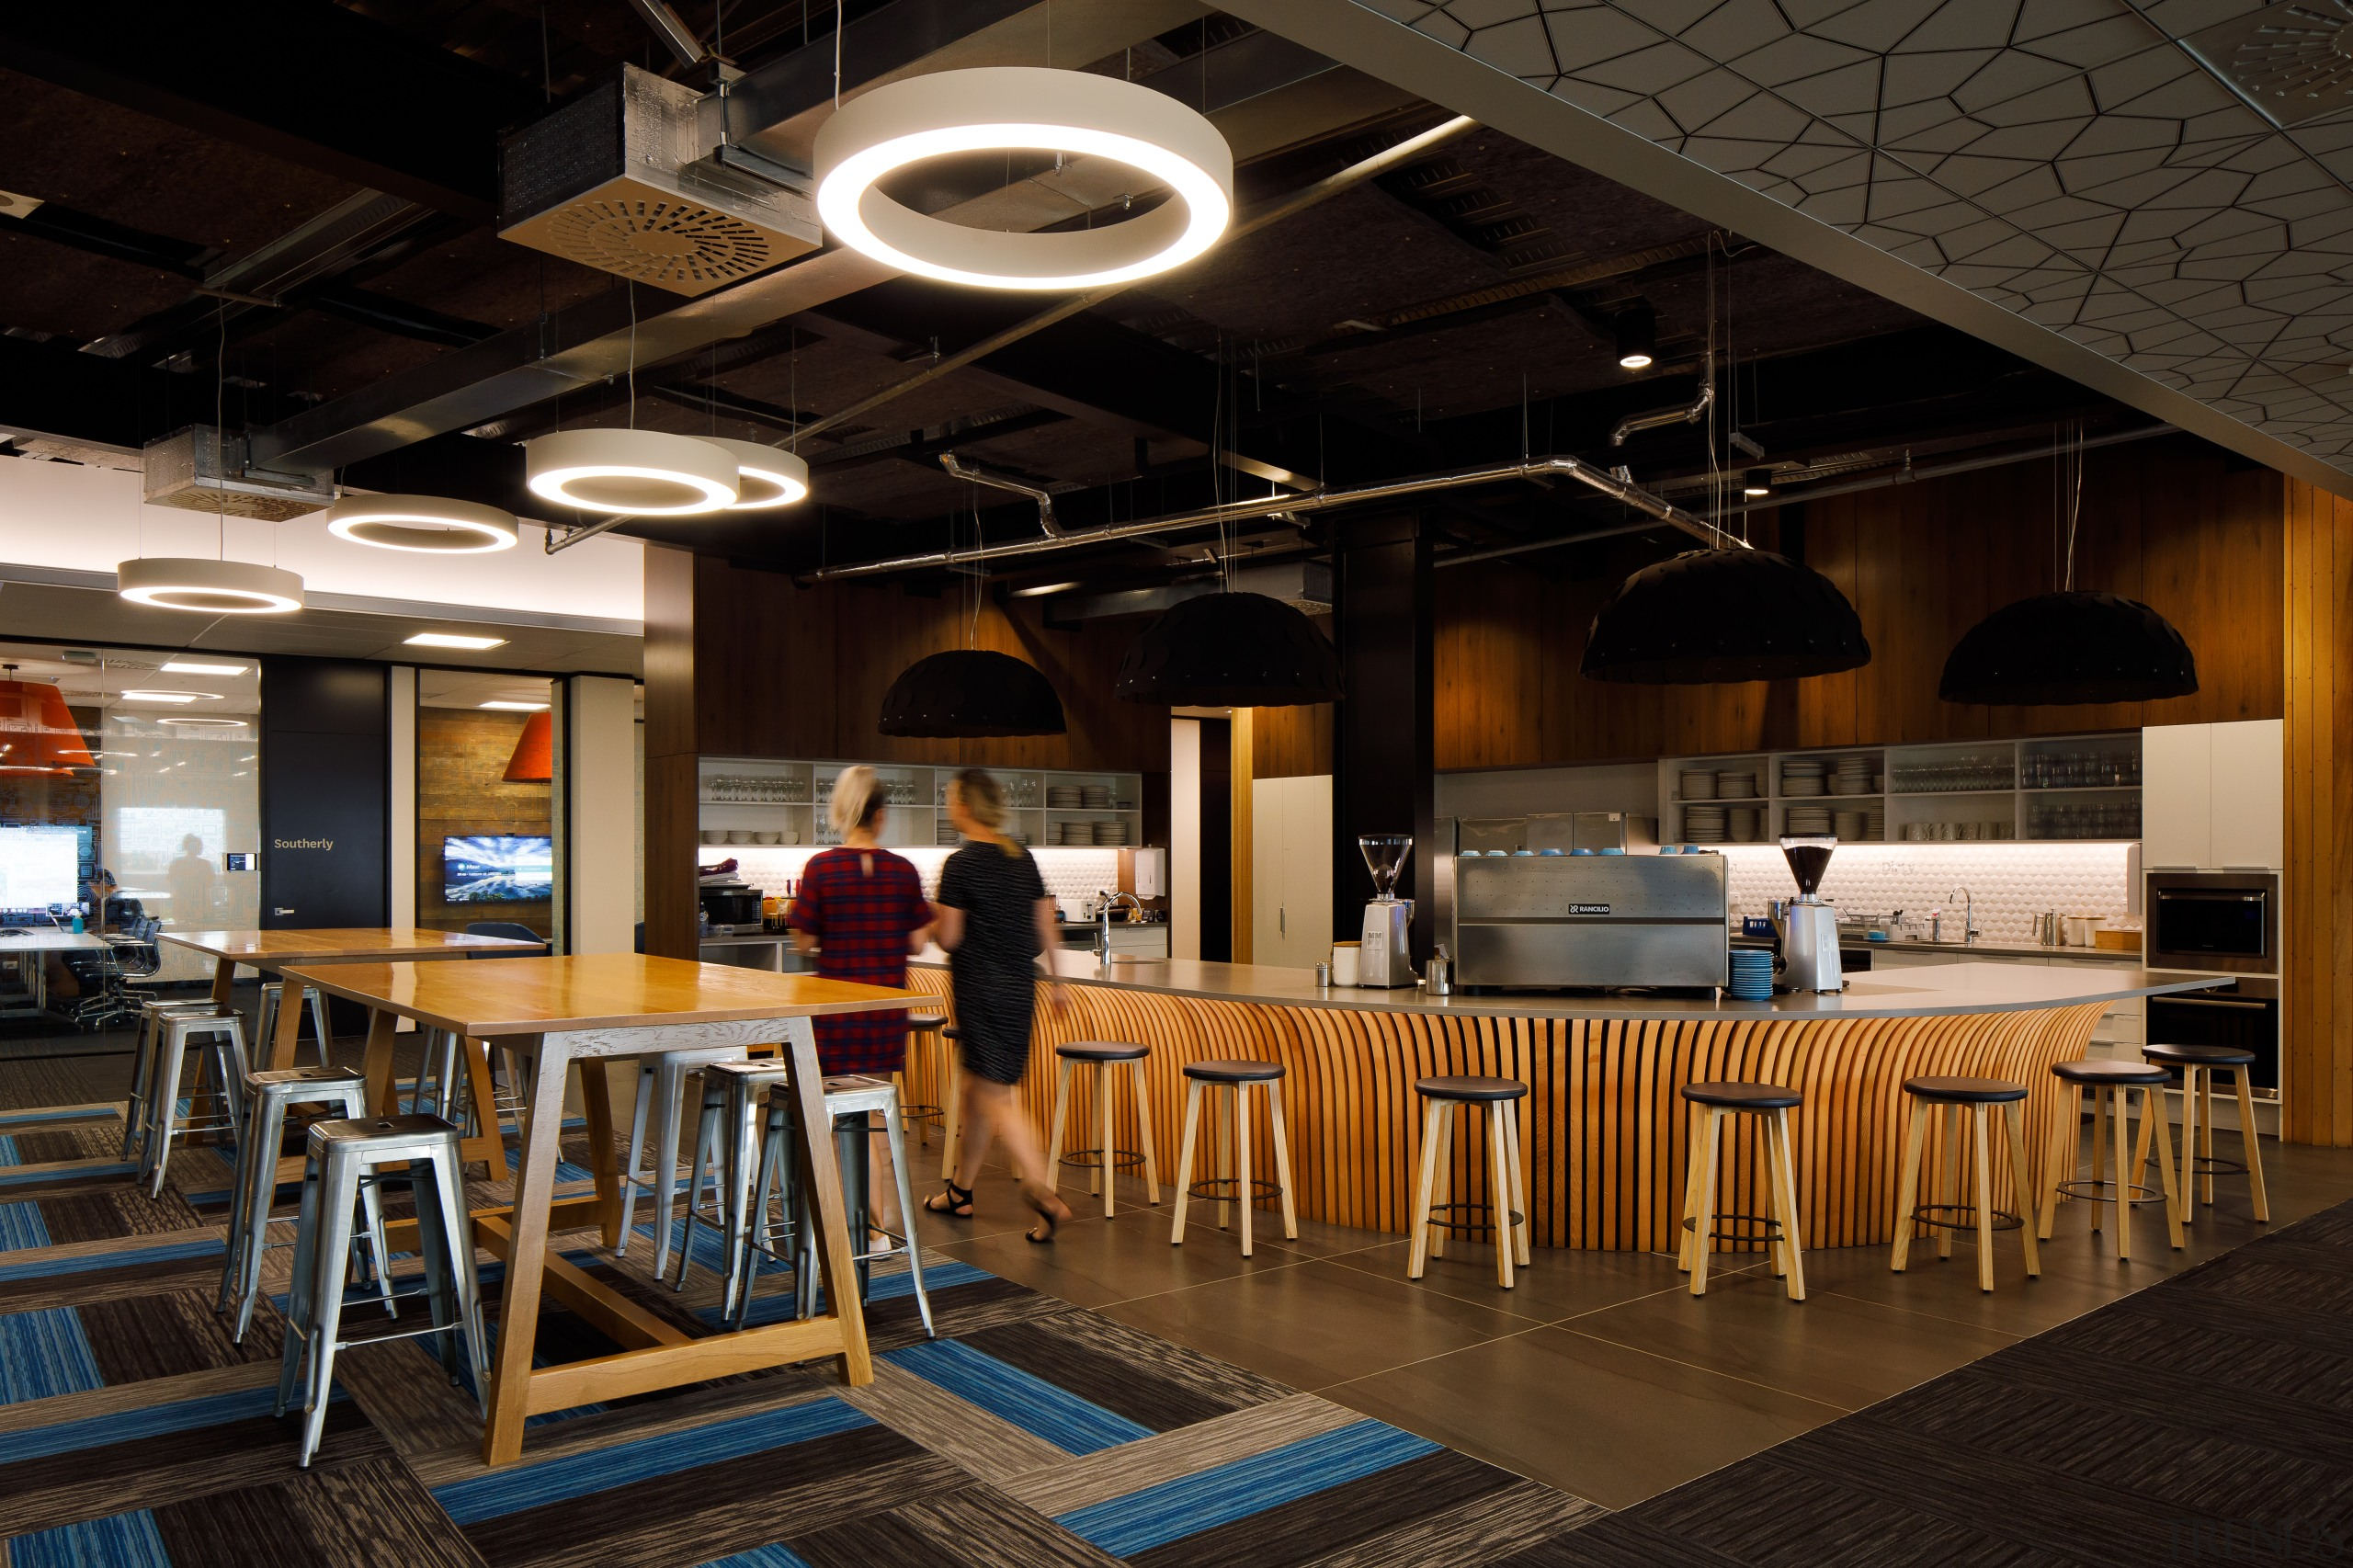 In the Xero head office fit-out, only ceilings architecture, building, café, cafeteria, ceiling, coffeehouse, furniture, interior design, lighting, restaurant, room, table, black, brown